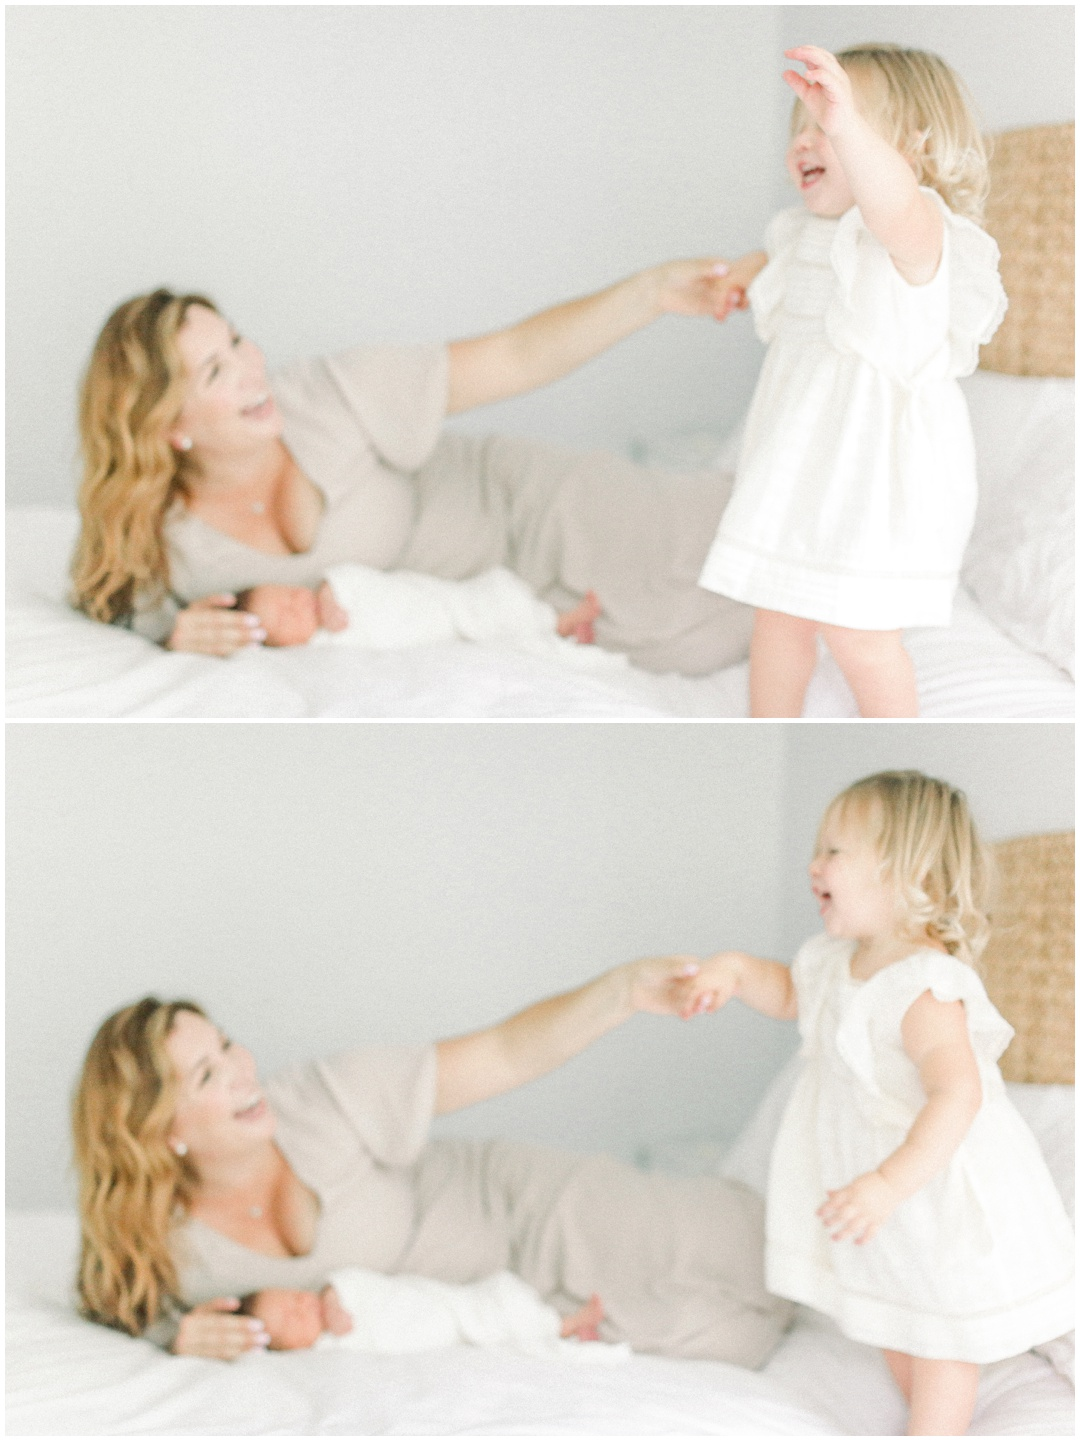 Newport_Beach_Newborn_Light_Airy_Natural_Photographer_Newport_Beach_Photographer_Orange_County_Family_Photographer_Cori_Kleckner_Photography_Newport_Beach_Photographer_Blaire_Baker_Brett_Baker_Caroline_Baker__3895.jpg